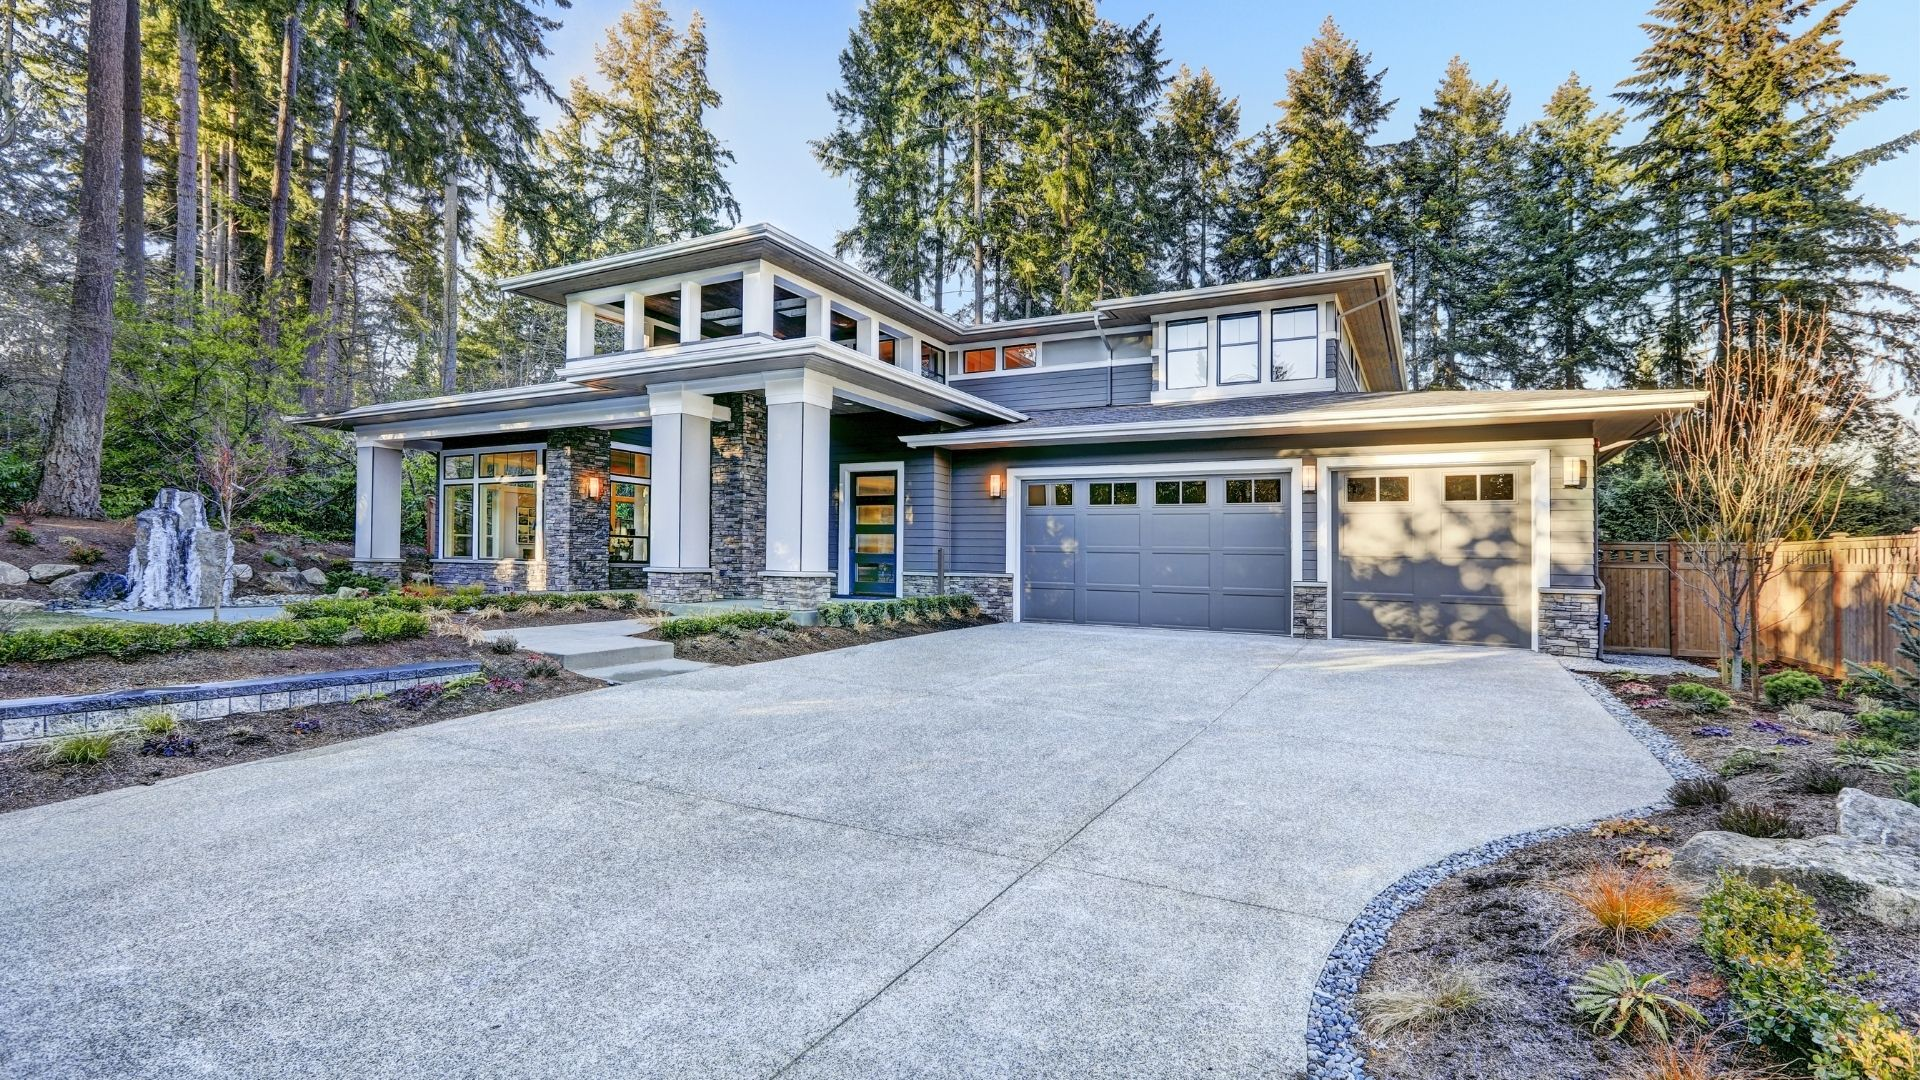 The Most Expensive Neighborhoods in Portland